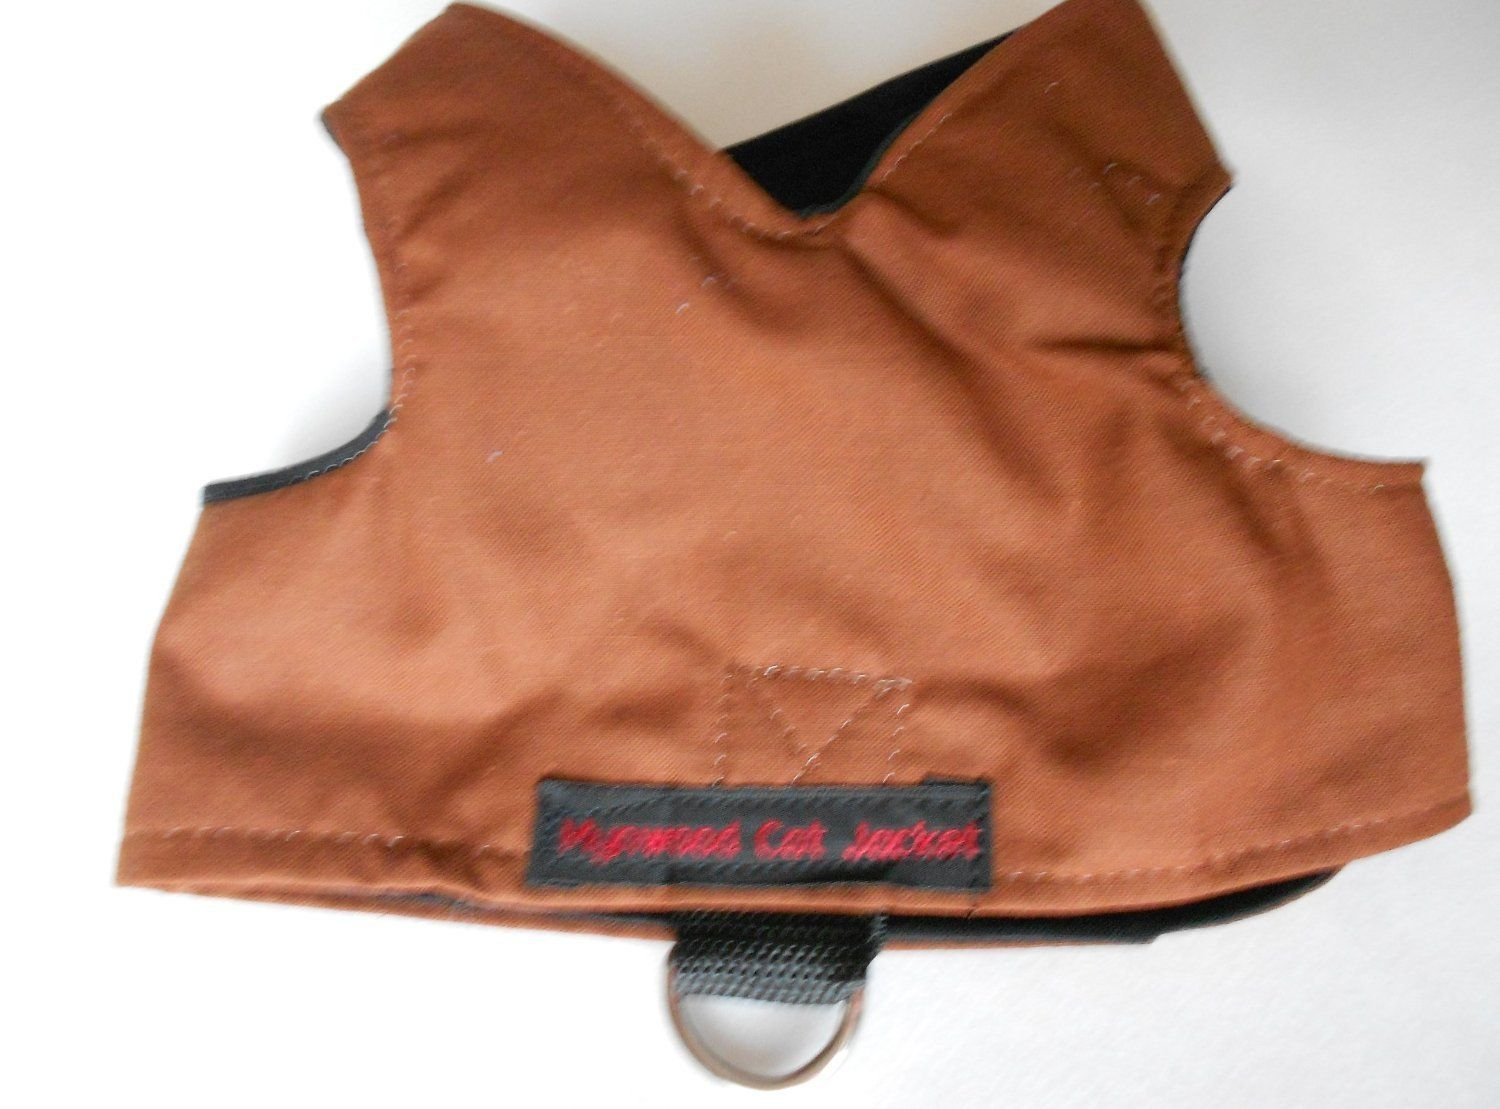 Mynwood Cat Jacket/Harness Chocolate Kitten up to 8 month